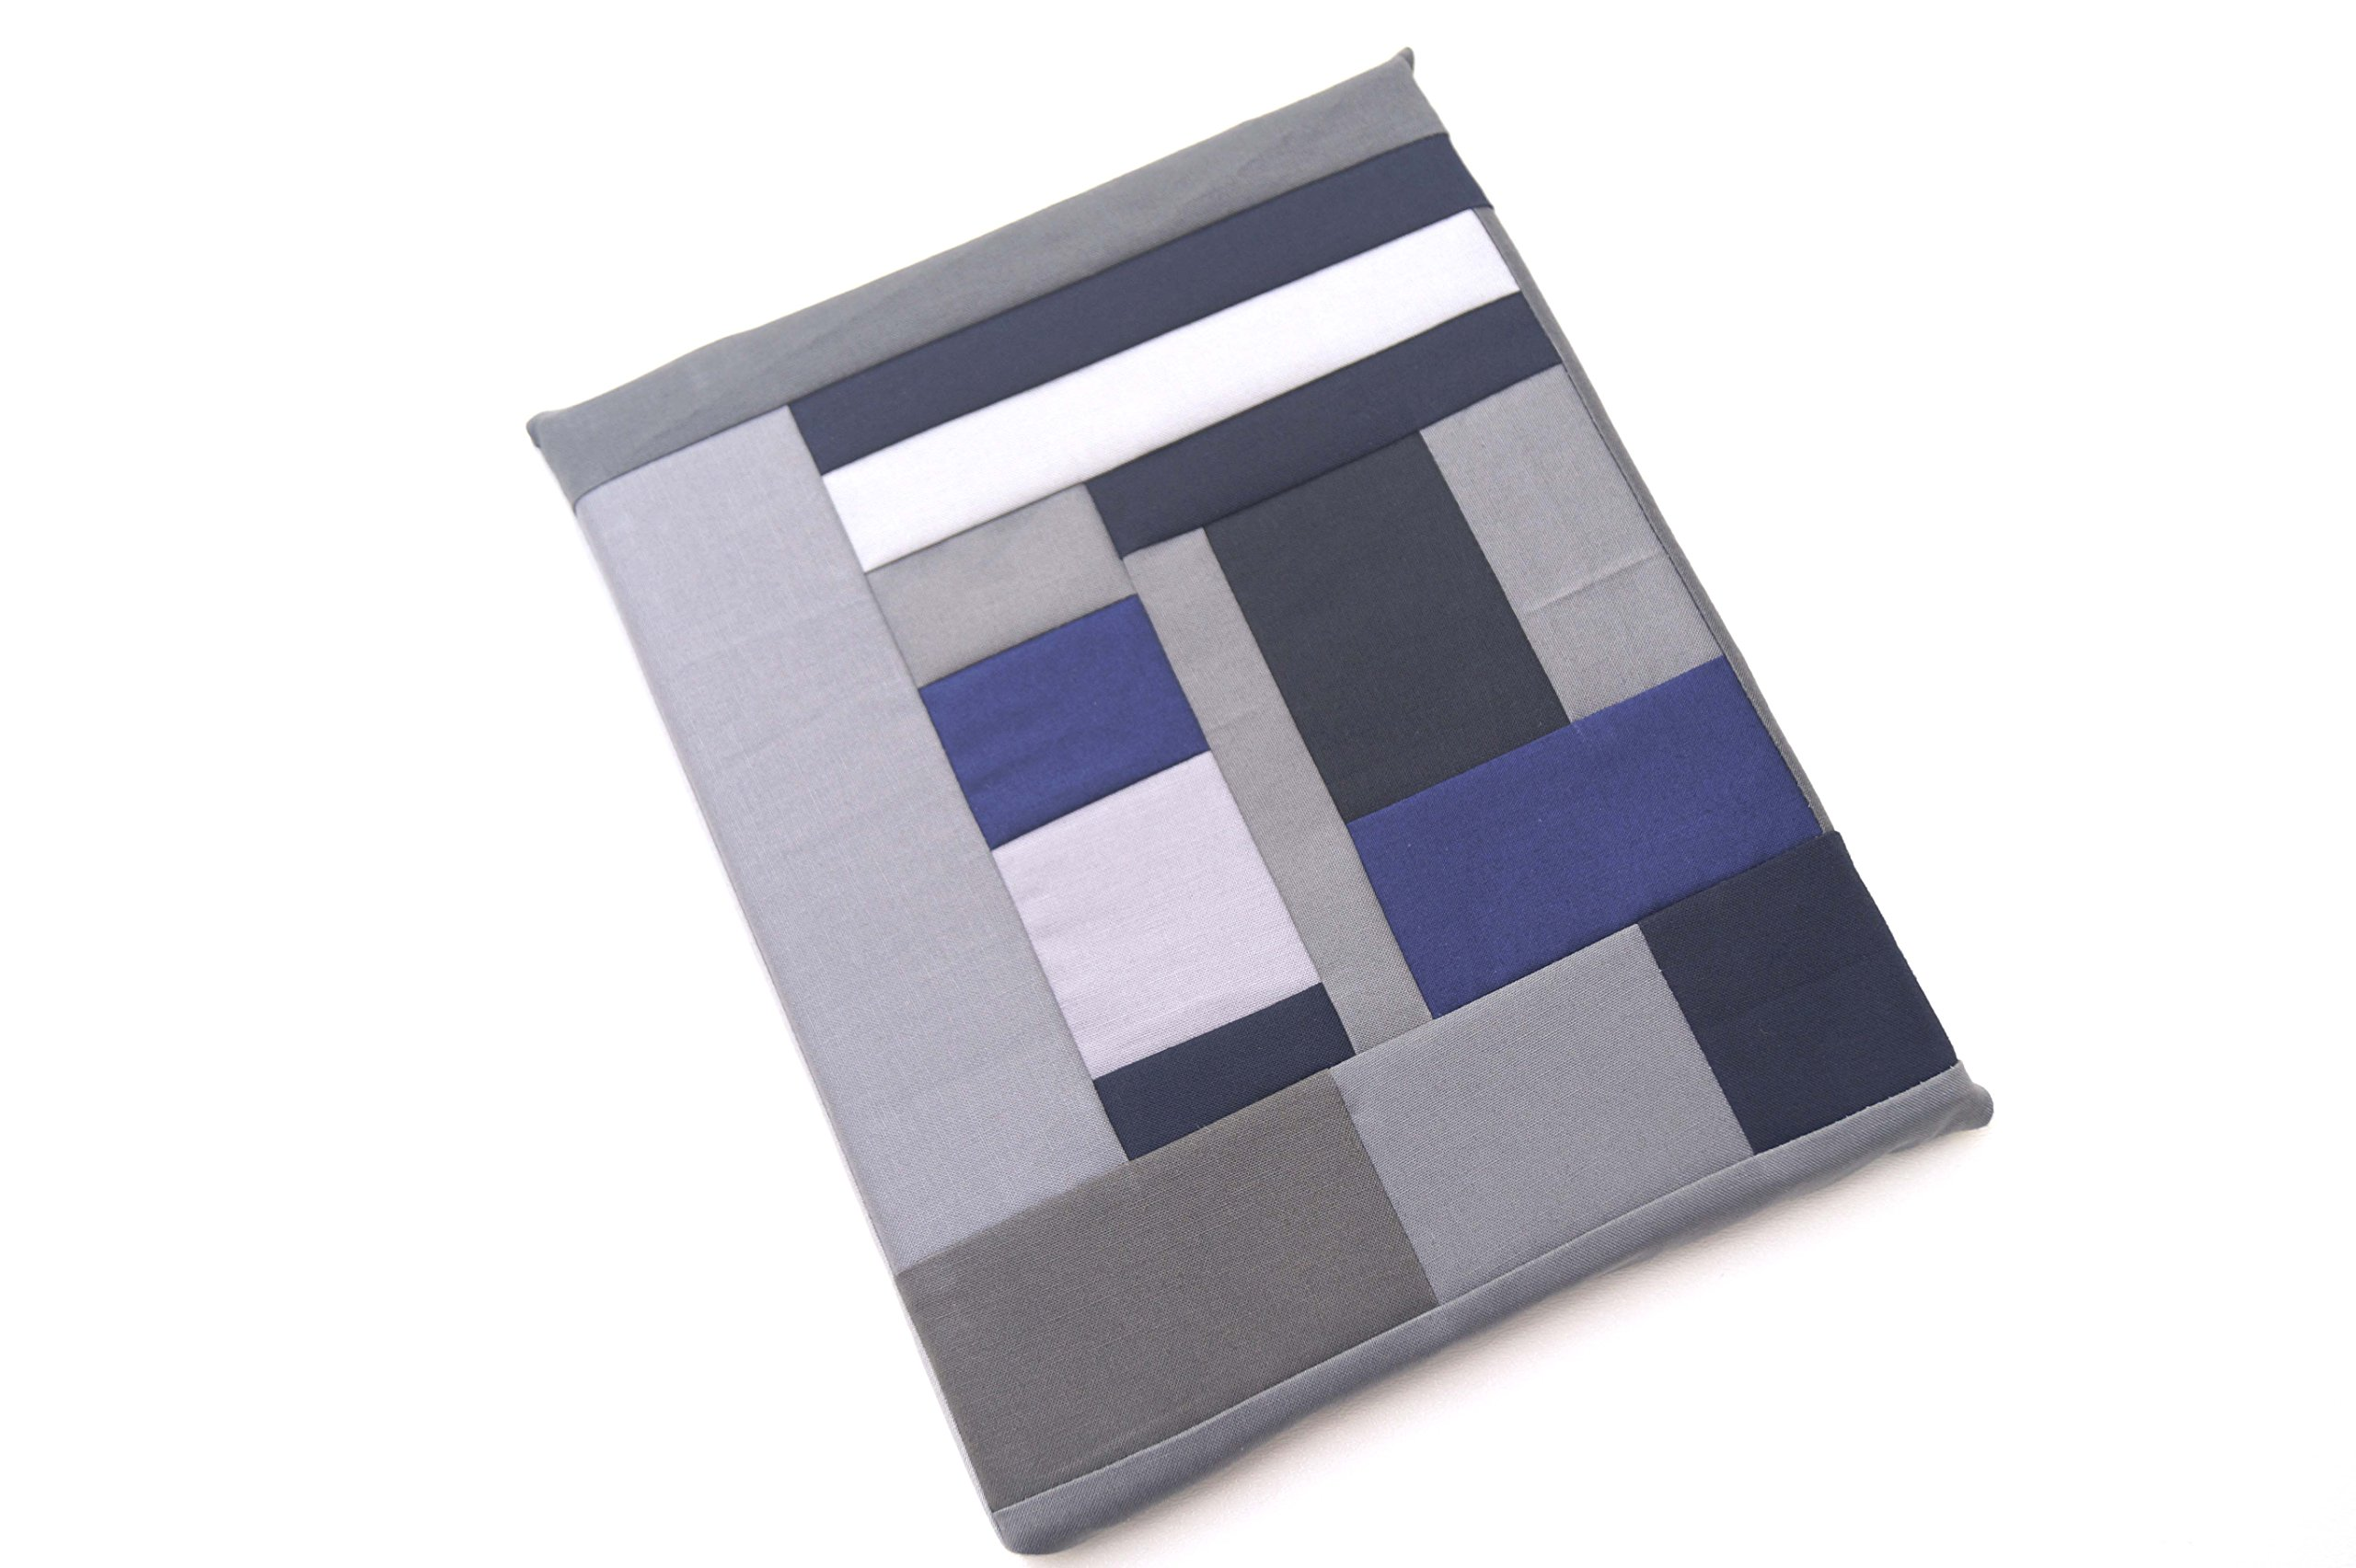 Abstract Fabric Patchwork Wall Art in Shades of Blue and Grey